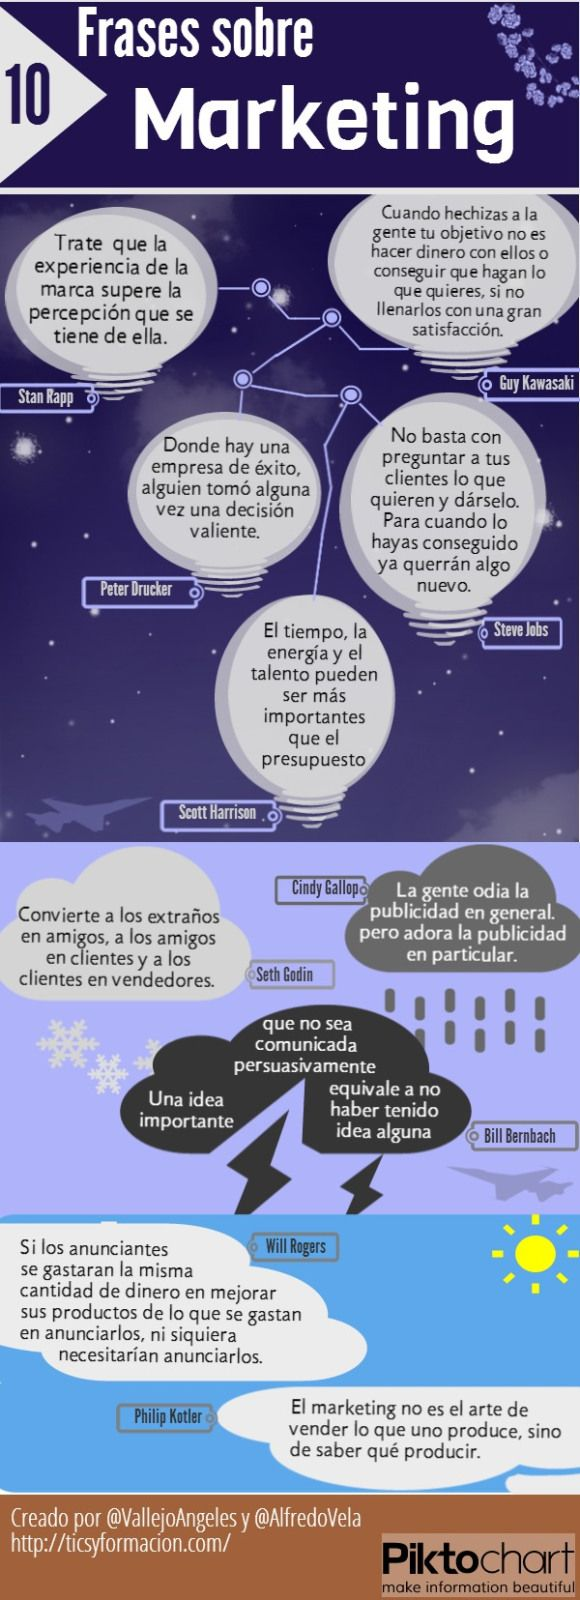 10 Frases sobre Marketing. #Infografía en español